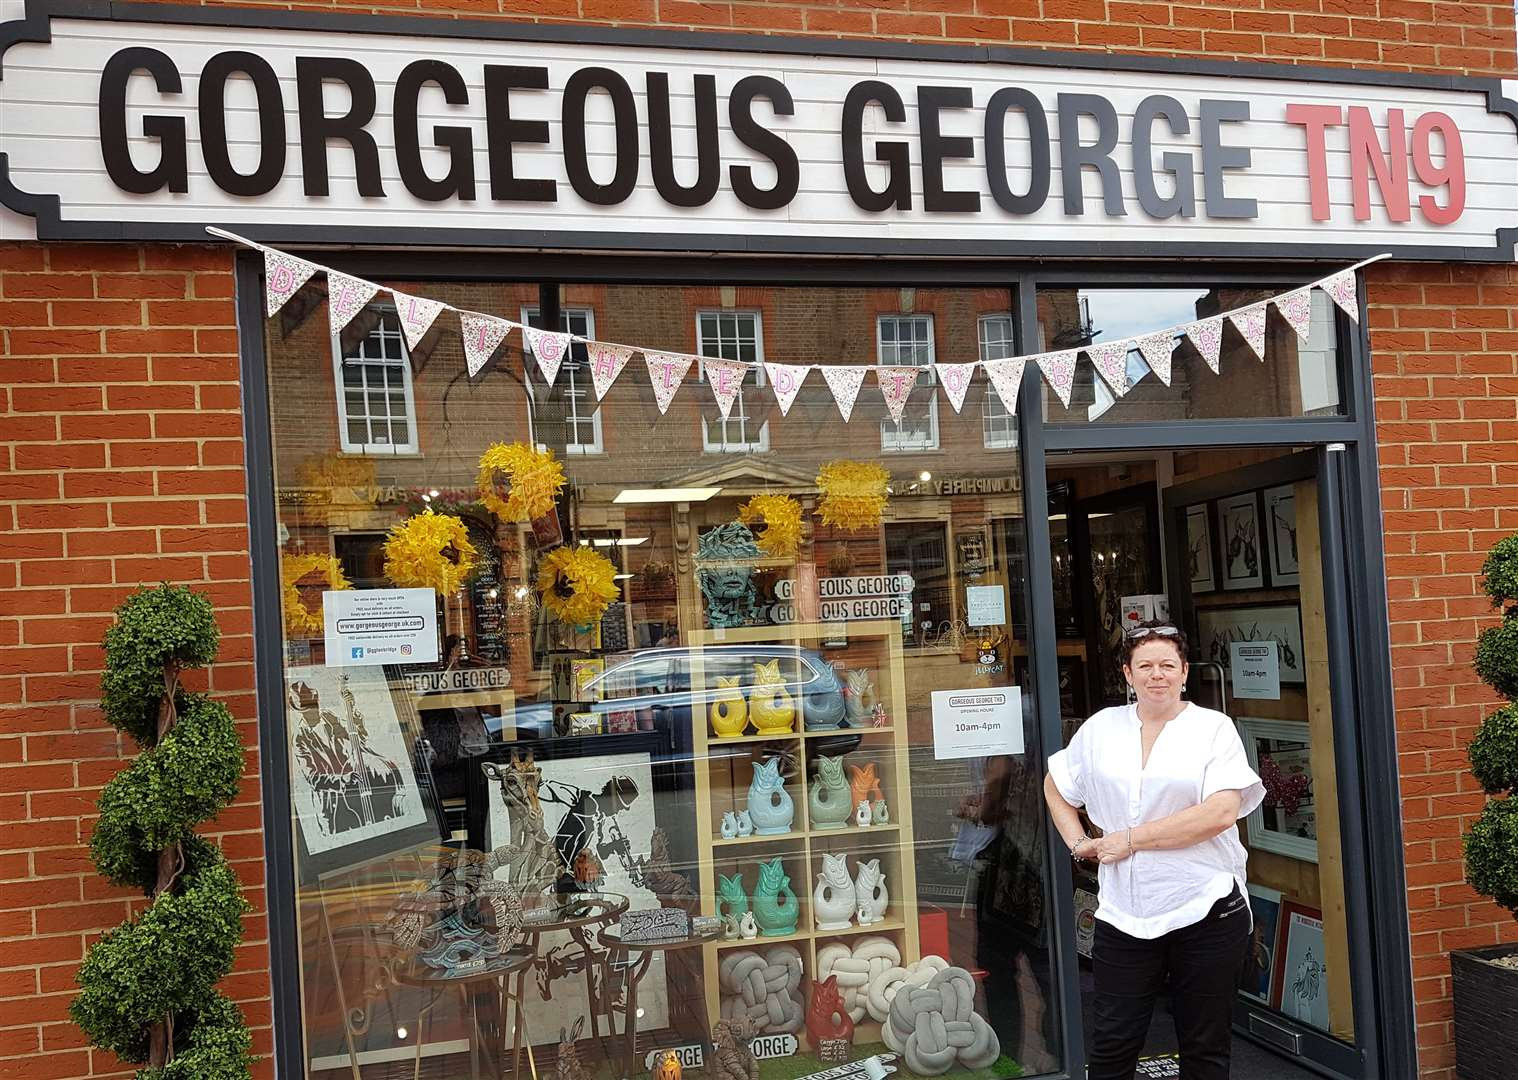 Teresa Seamer is the owner of Gorgeous George in Tonbridge and is looking forward to welcoming customers back